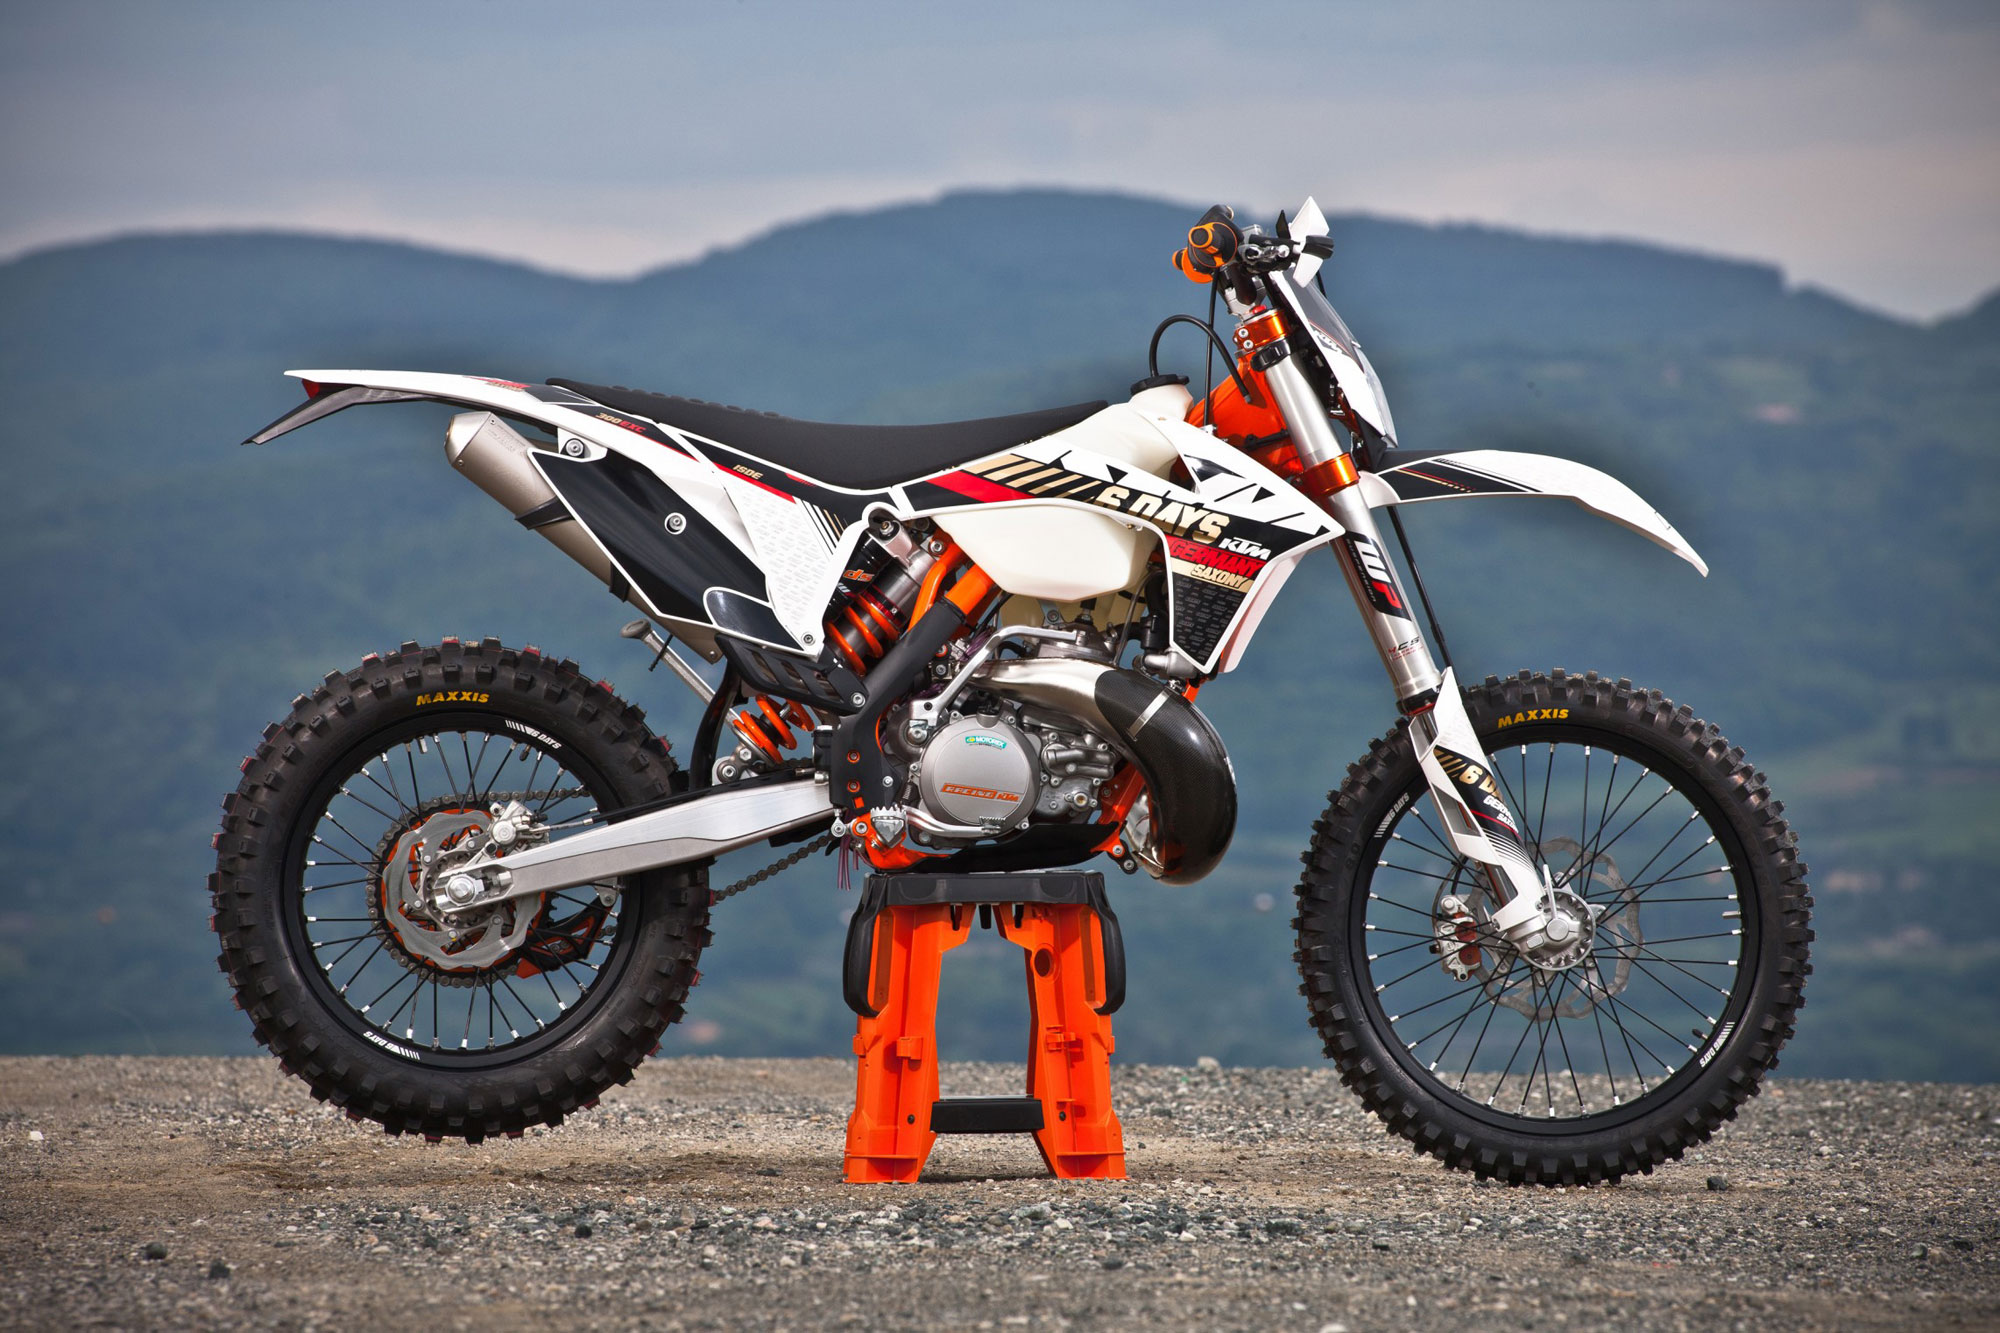 Ktm 2019 Exc >> 2013 KTM 300 EXC Six Days wallpaper | 2000x1333 | 87359 | WallpaperUP